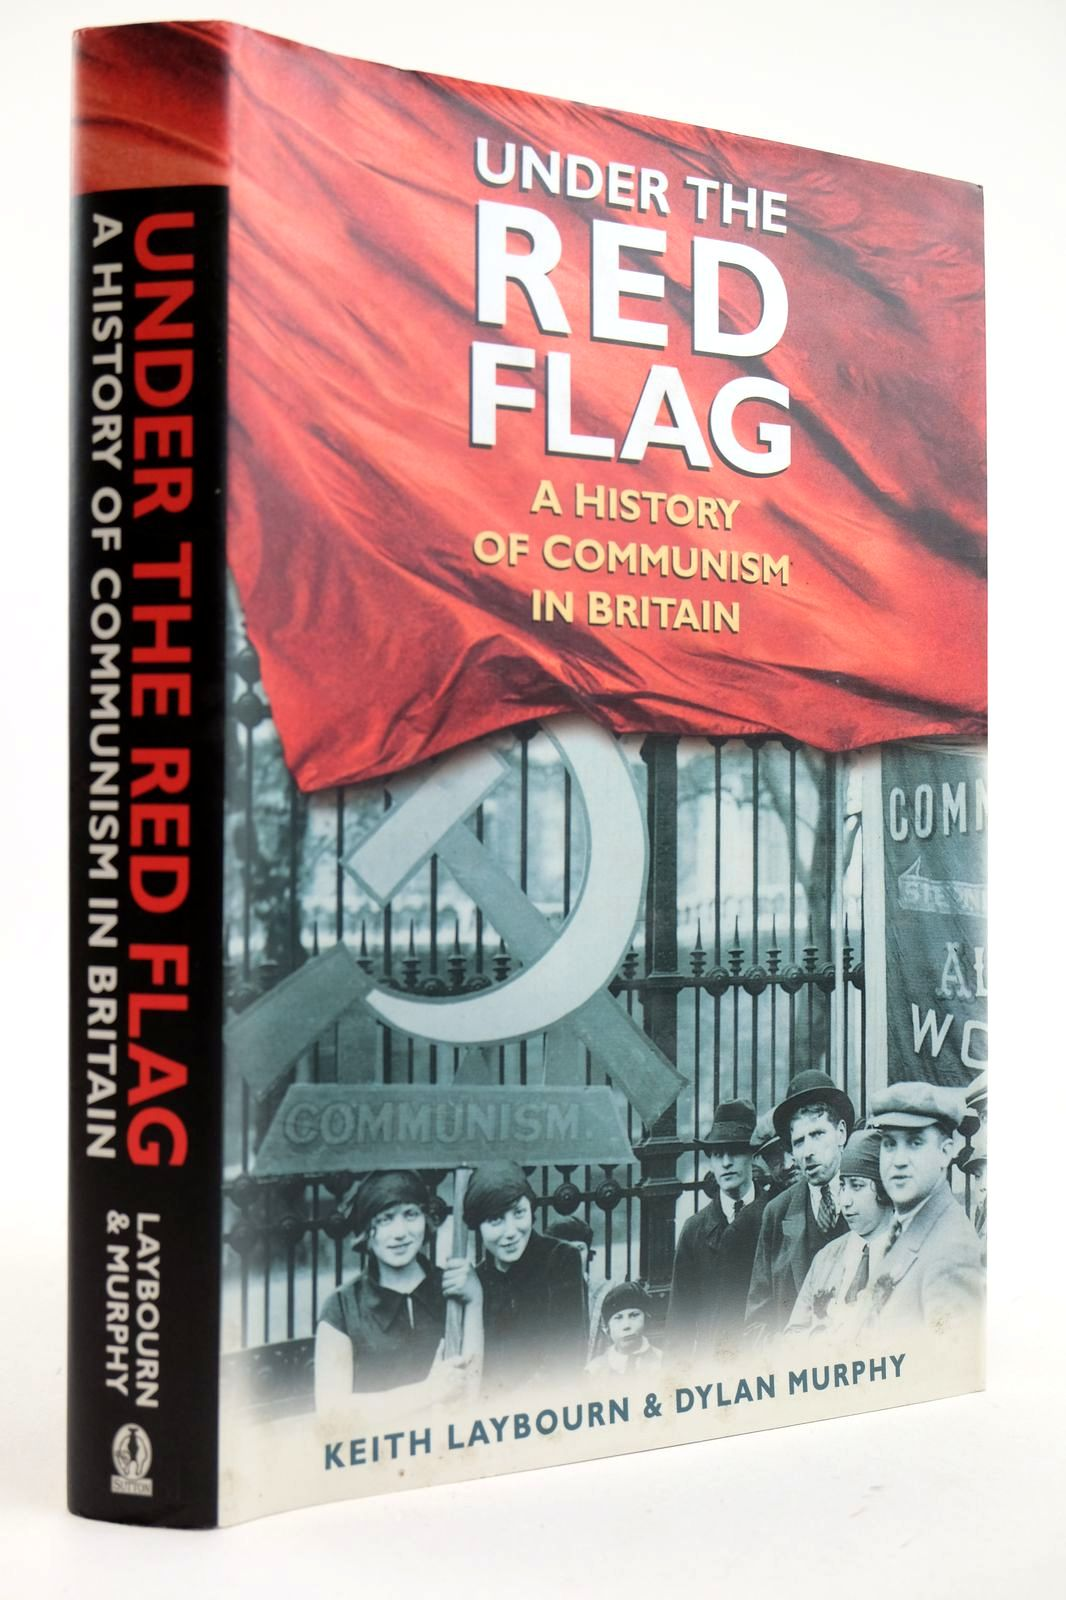 Photo of UNDER THE RED FLAG A HISTORY OF COMMUNISM IN BRITAIN, C. 1849-1991 written by Laybourn, Keith Murphy, Dylan published by Sutton Publishing (STOCK CODE: 2132641)  for sale by Stella & Rose's Books